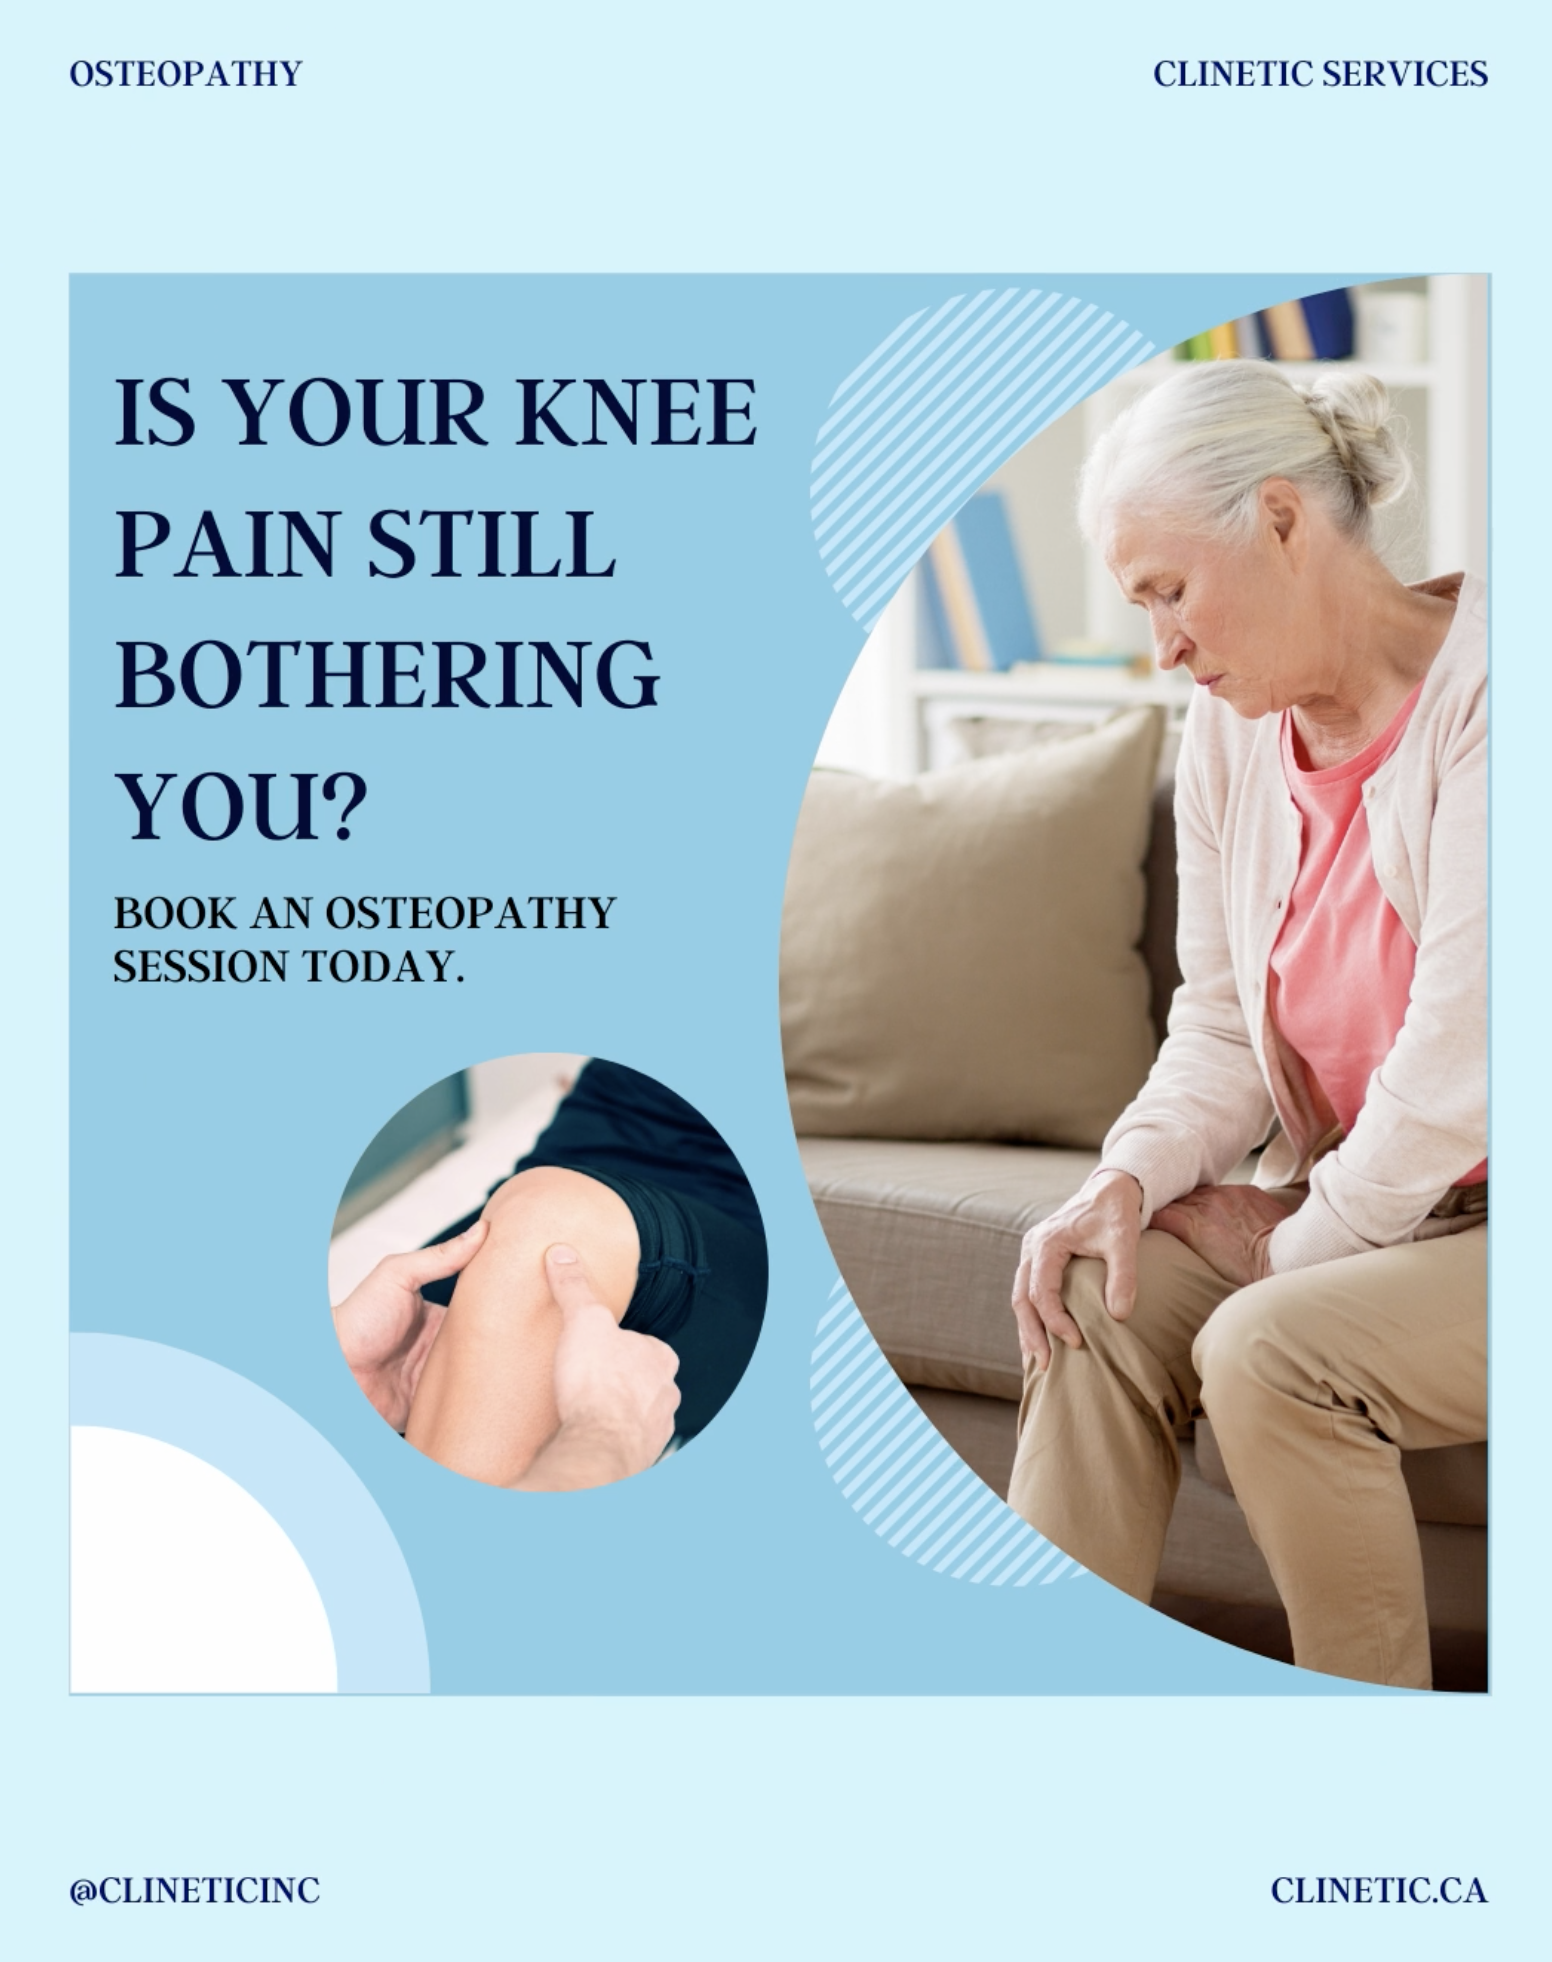 Is your knee pain still bothering you?